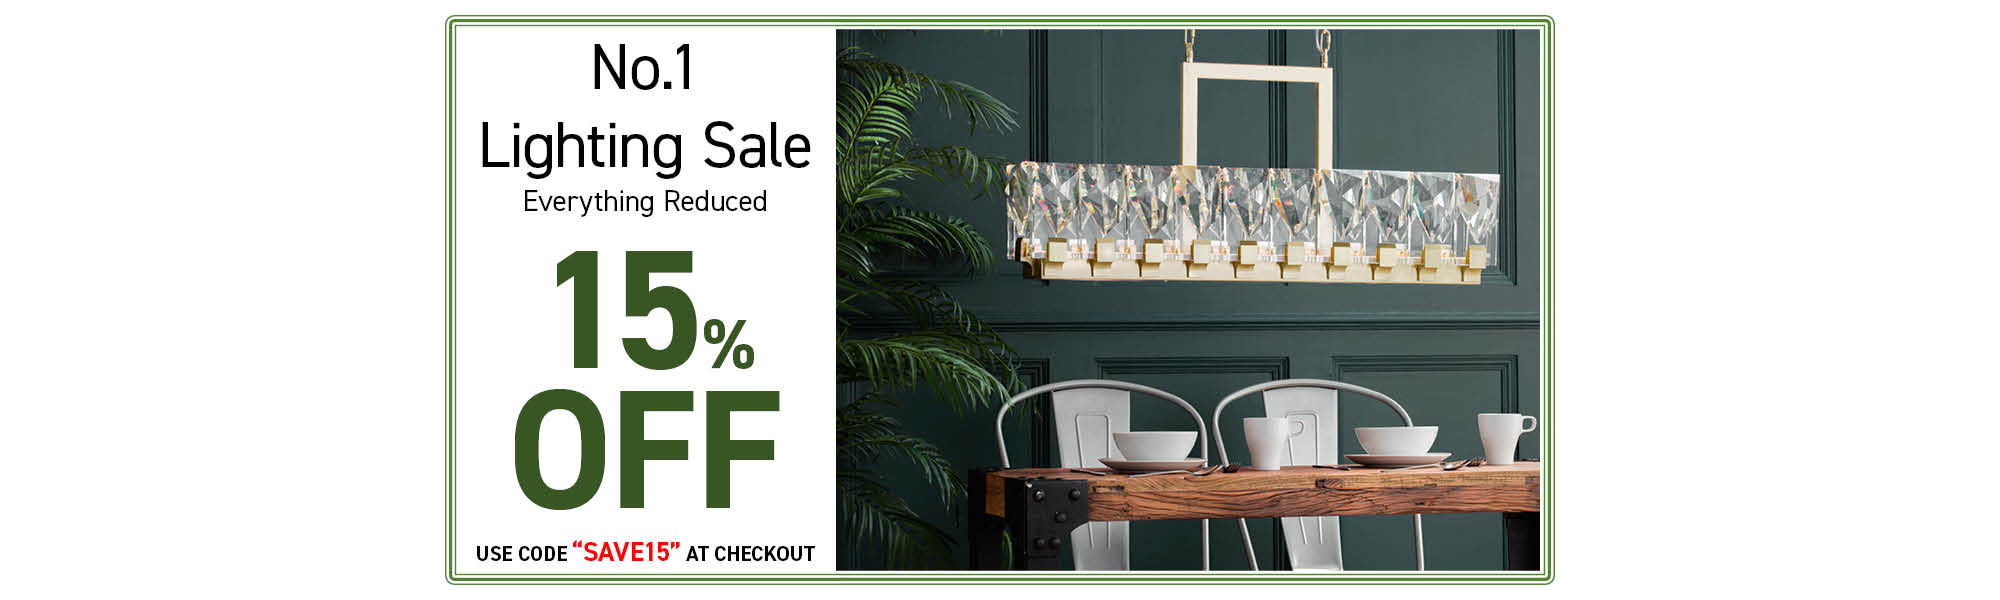 Number 1 Lighting Sale. Get 15% Off Everything. With Fast & Free Delivery